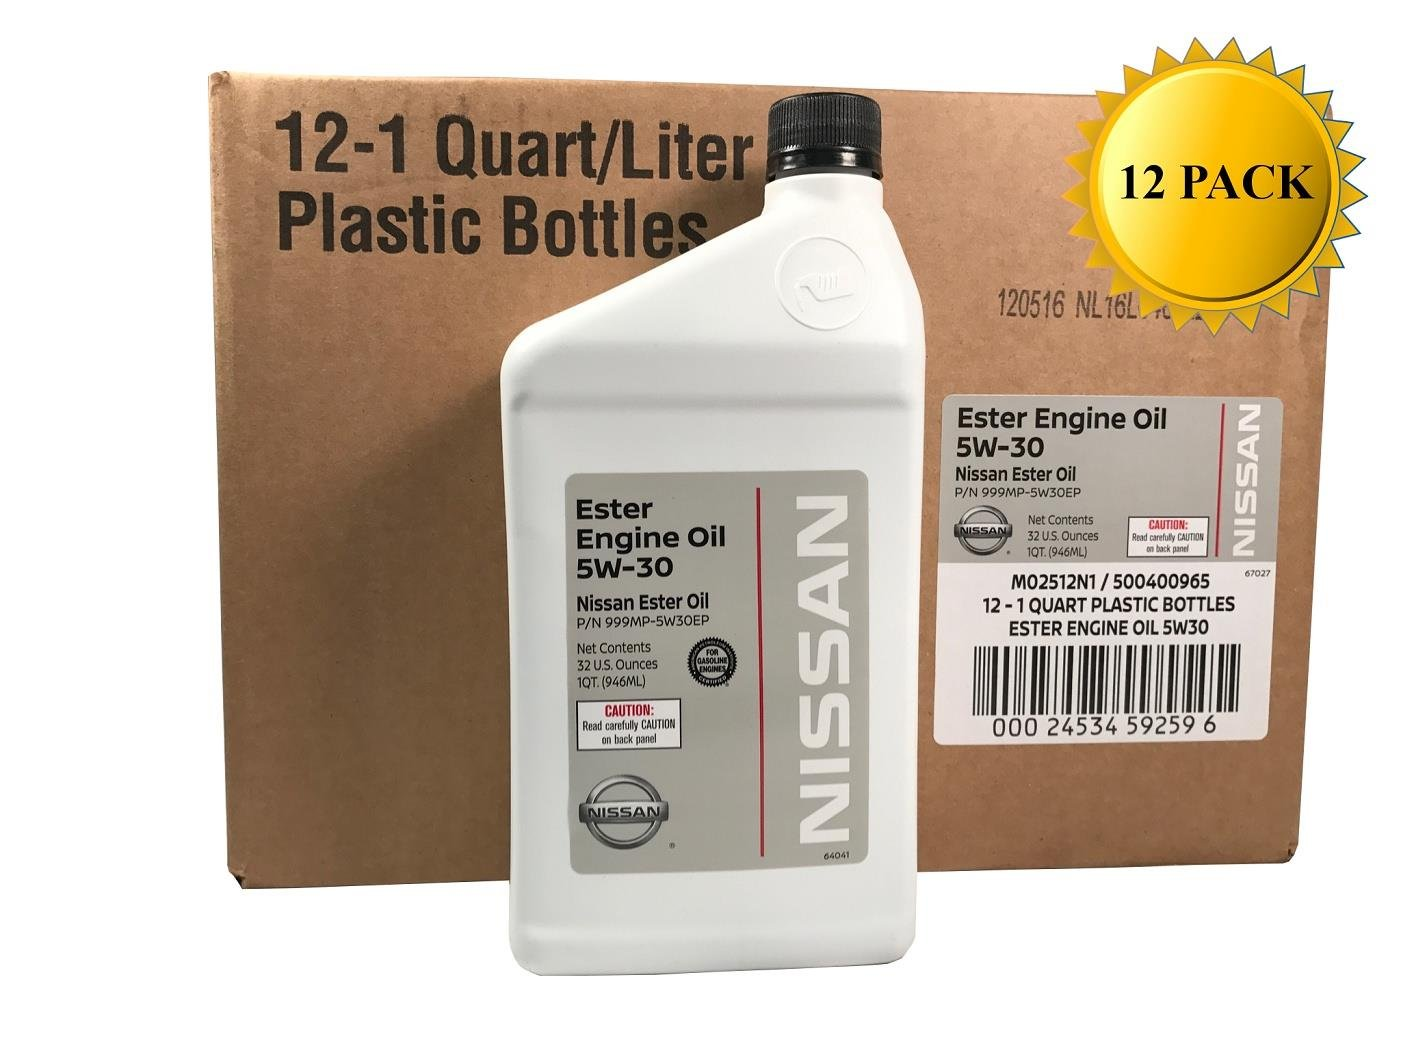 Genuine Nissan OEM 5W-30 Ester Engine Oil GL-4 999MP-5W30EP (Case of 12)